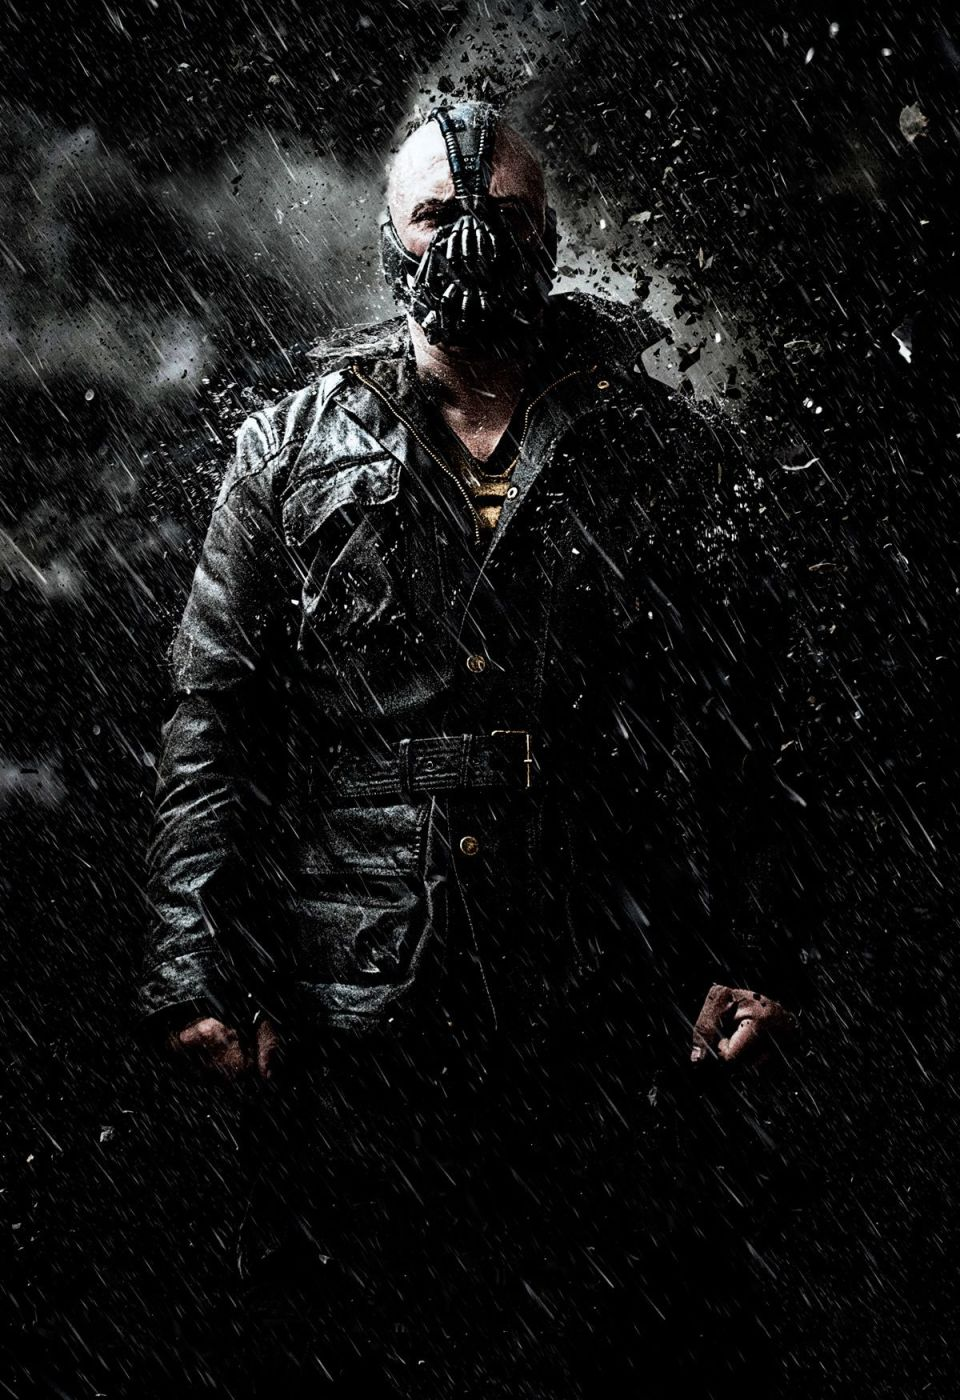 THE DARK KNIGHT RISES Textless Posters and Banners (5)